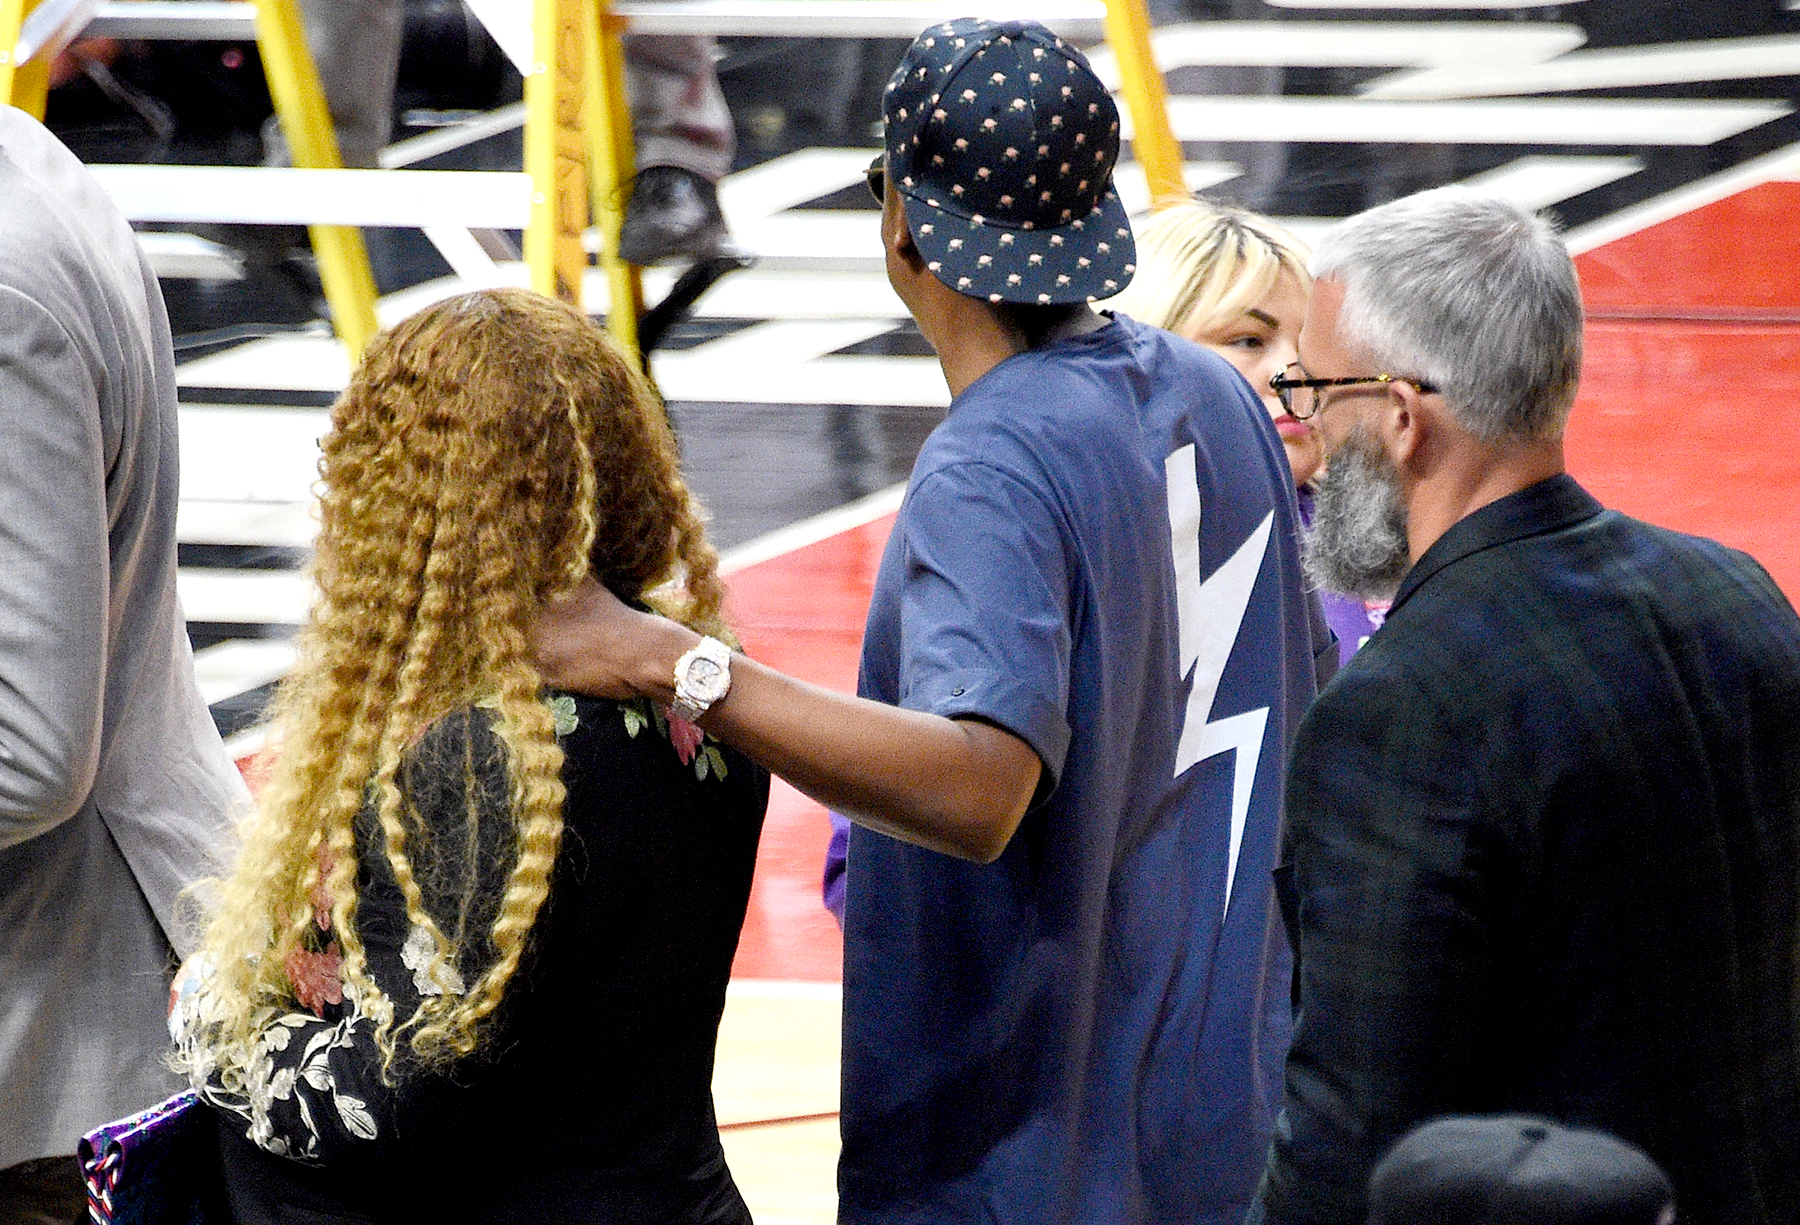 Beyonce and Jay Z attend Game Seven of the Western Conference Quarterfinals of the 2017 NBA Playoffs on April 30, 2017 at STAPLES Center in Los Angeles, California.